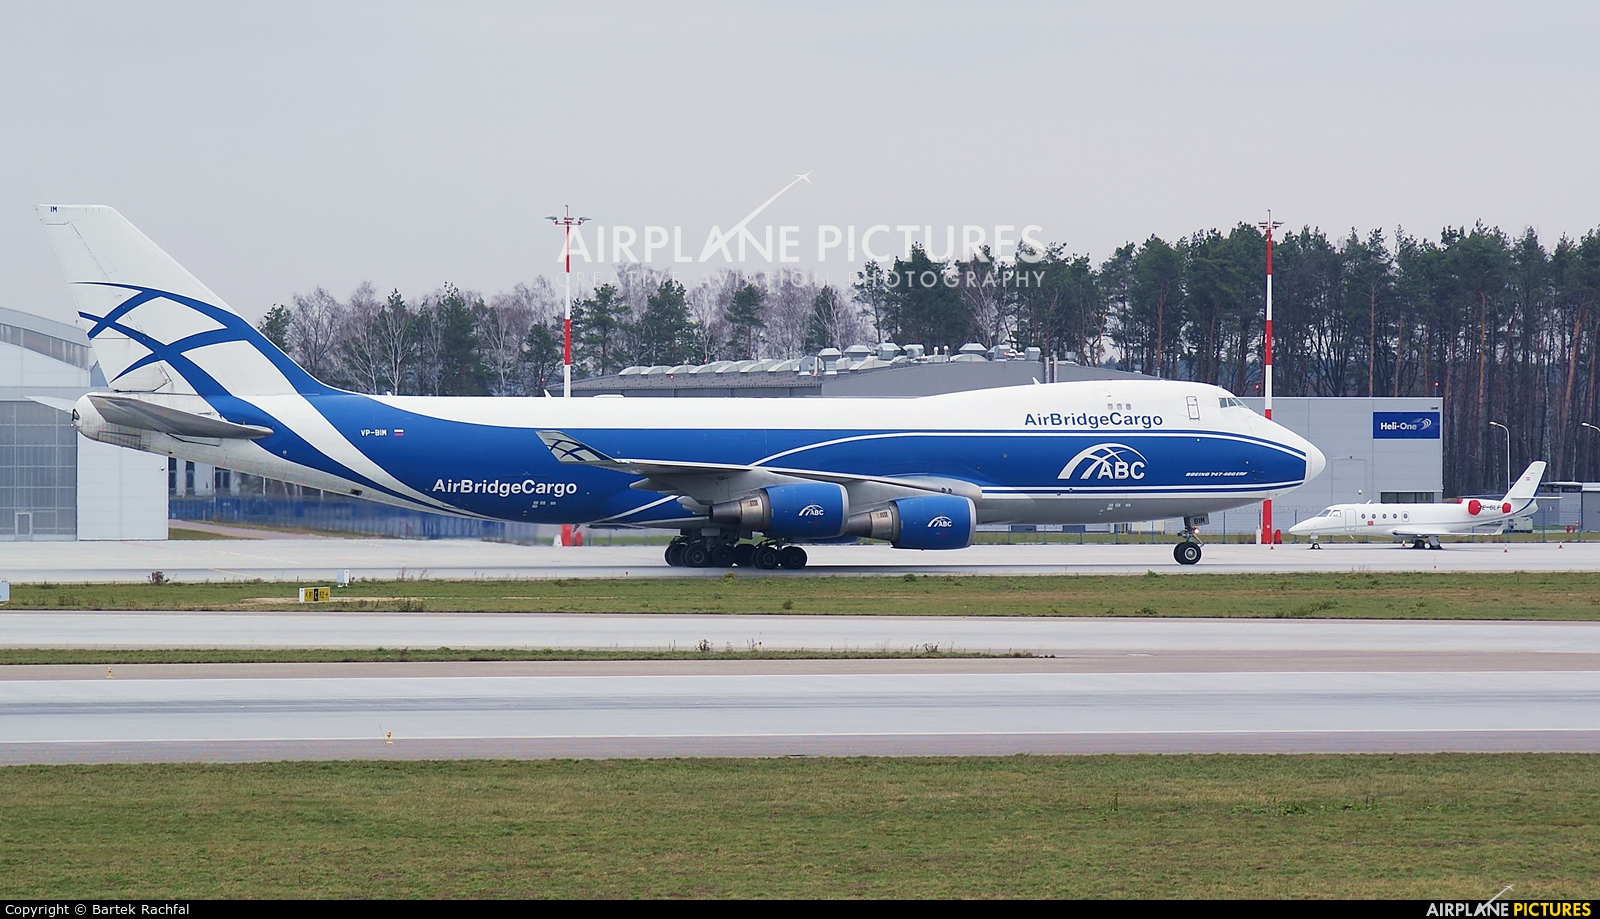 Air Bridge Cargo VP-BIM aircraft at Rzeszów-Jasionka